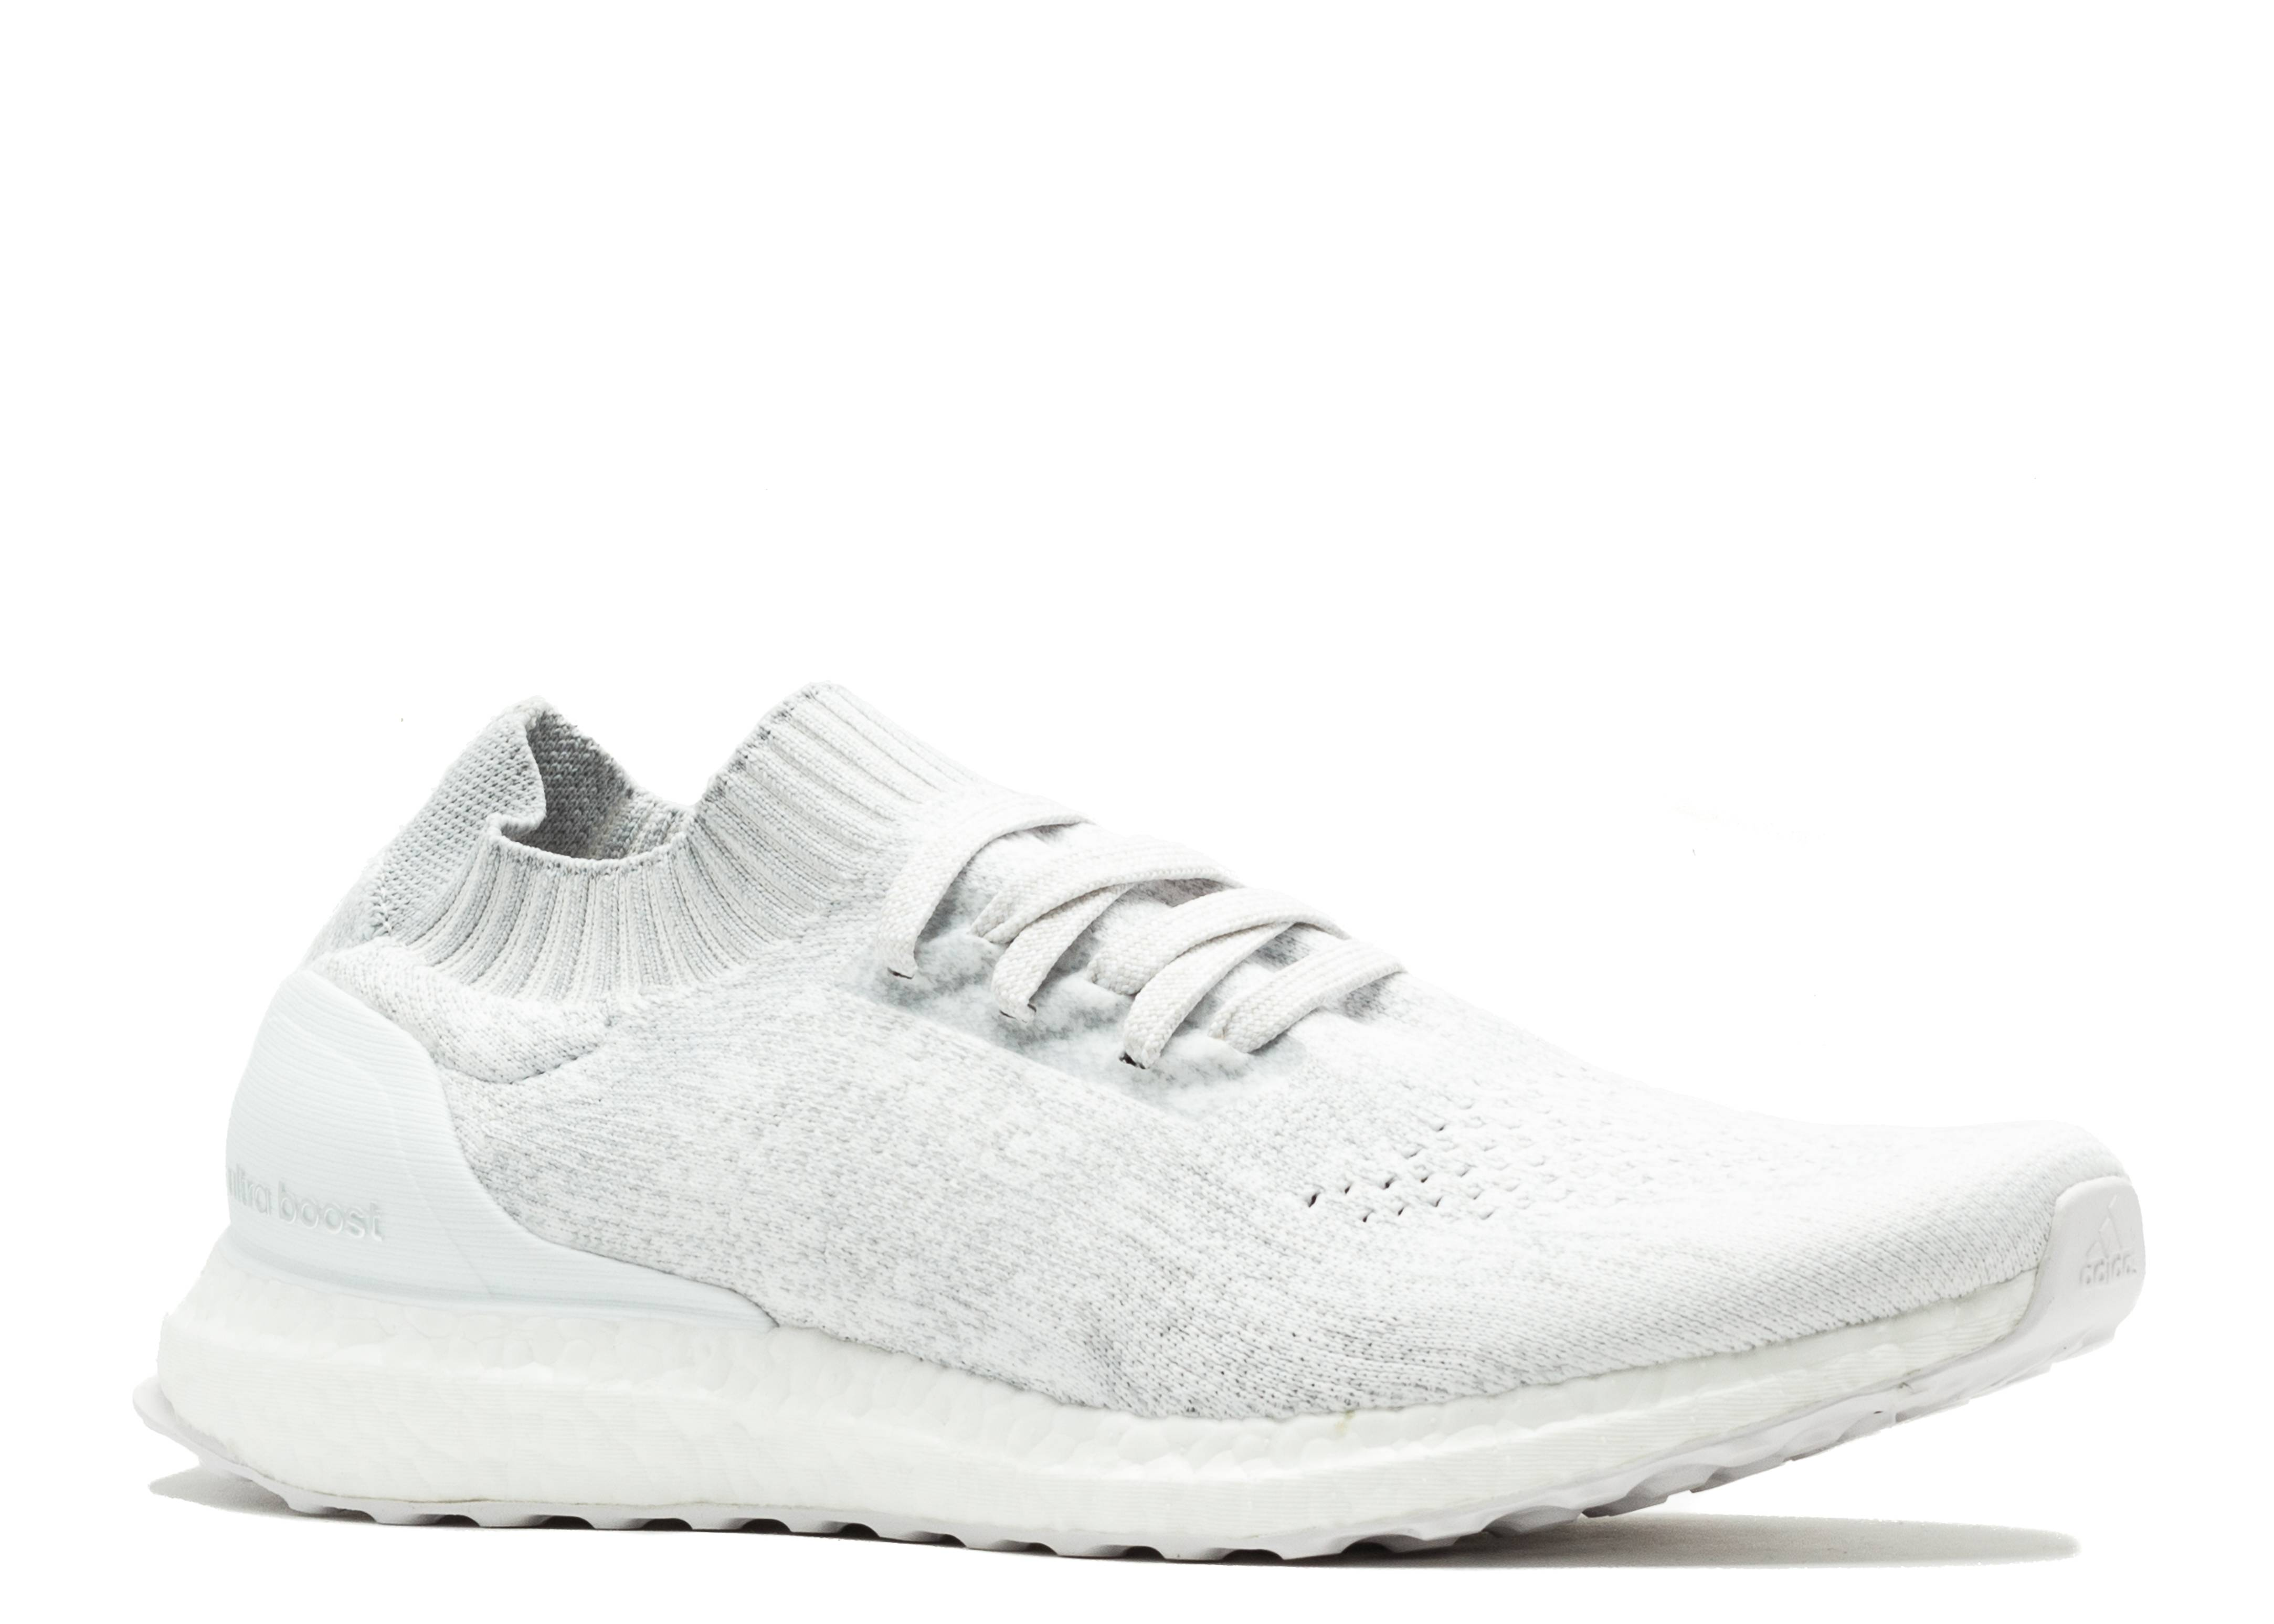 939d9cb01d4 Ultraboost Uncaged - Adidas - by2549 - white grey